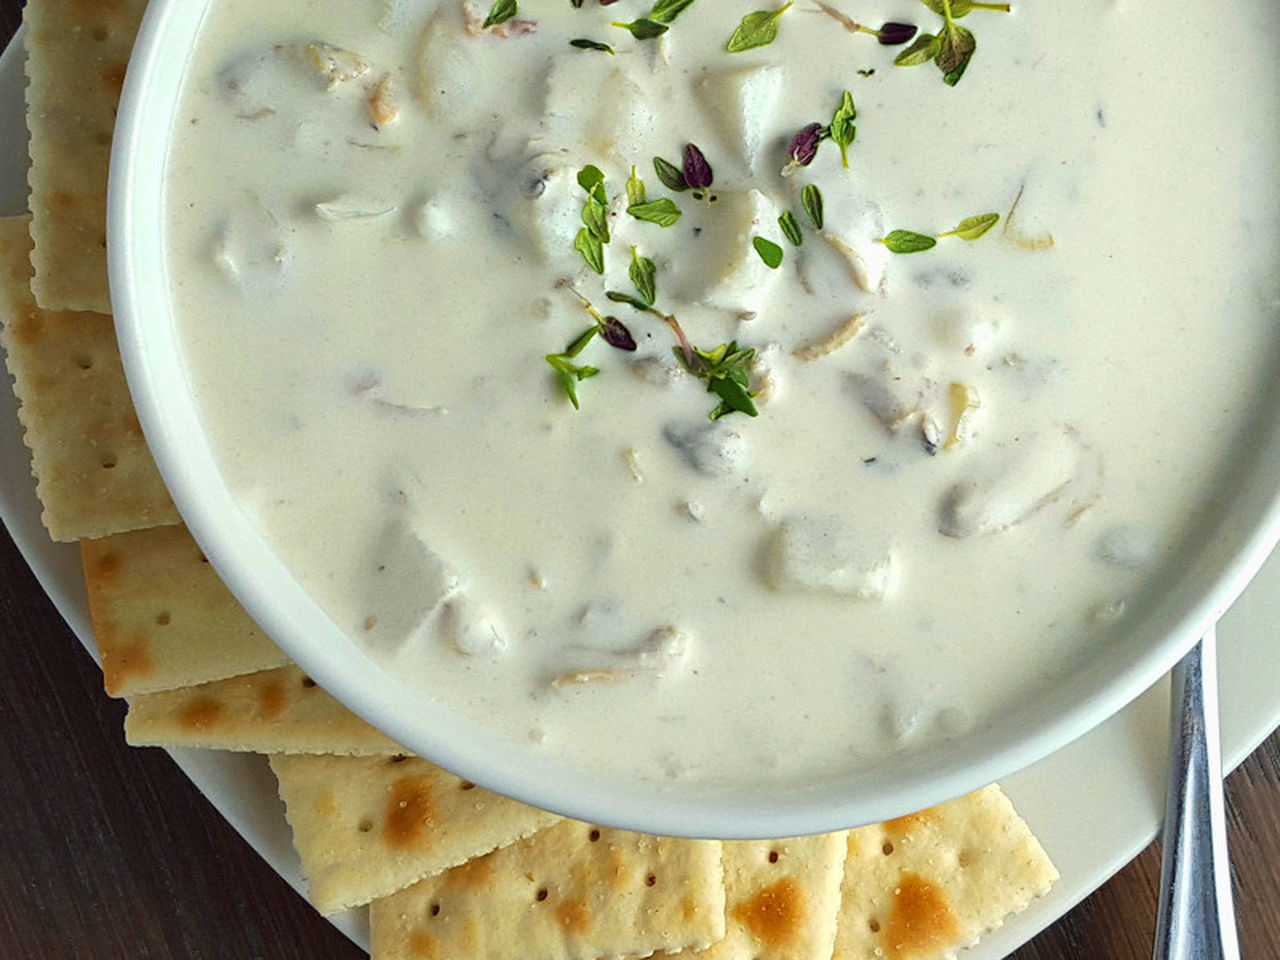 Clamchowder Clam Chowder Soup Seafood Foodphotography Top Perspective Close-up Comfortfood Crackers Food Porn Awards Foodporn Foodphoto Cooking